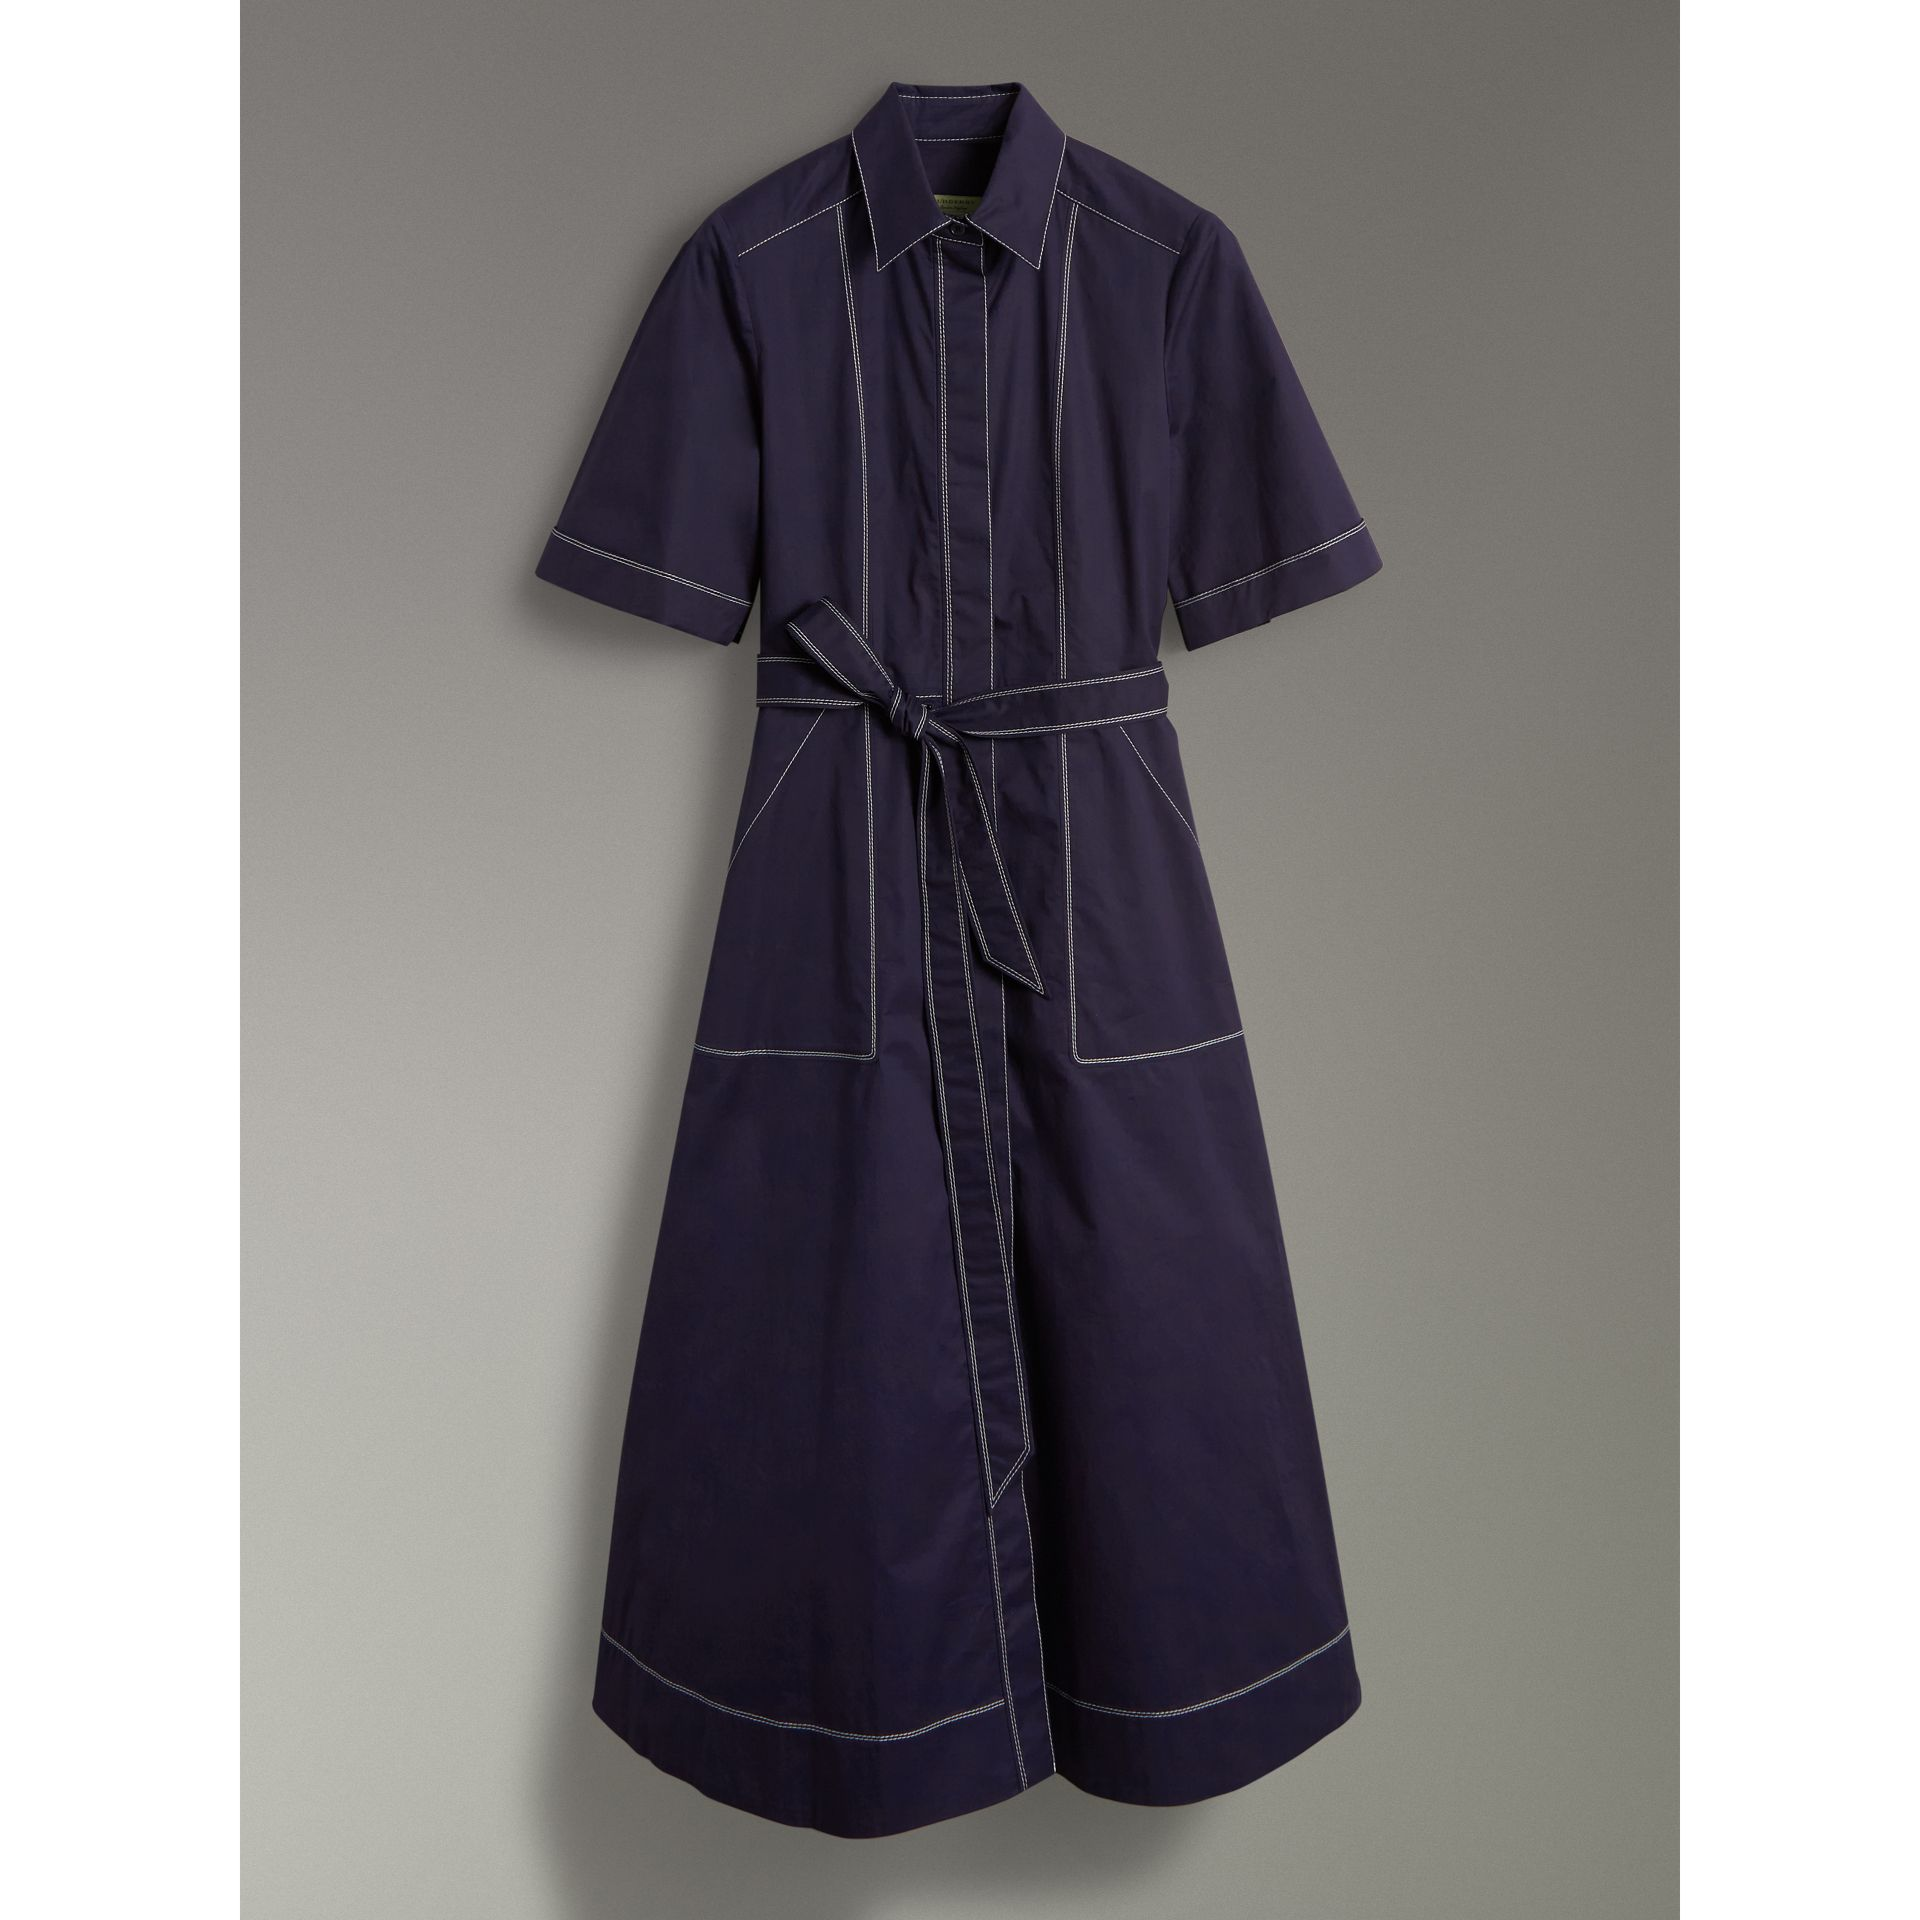 Topstitch Detail Stretch Cotton Dress in Navy - Women | Burberry - gallery image 3